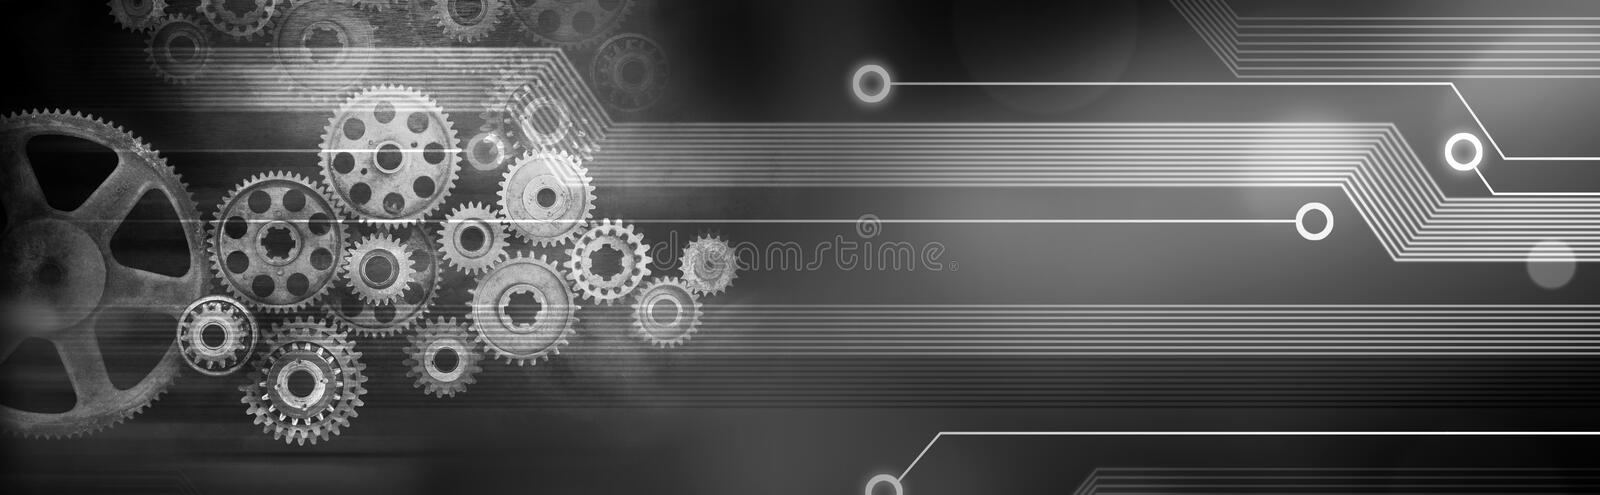 Technology Gears Cogs Banner Background Integration royalty free stock photo